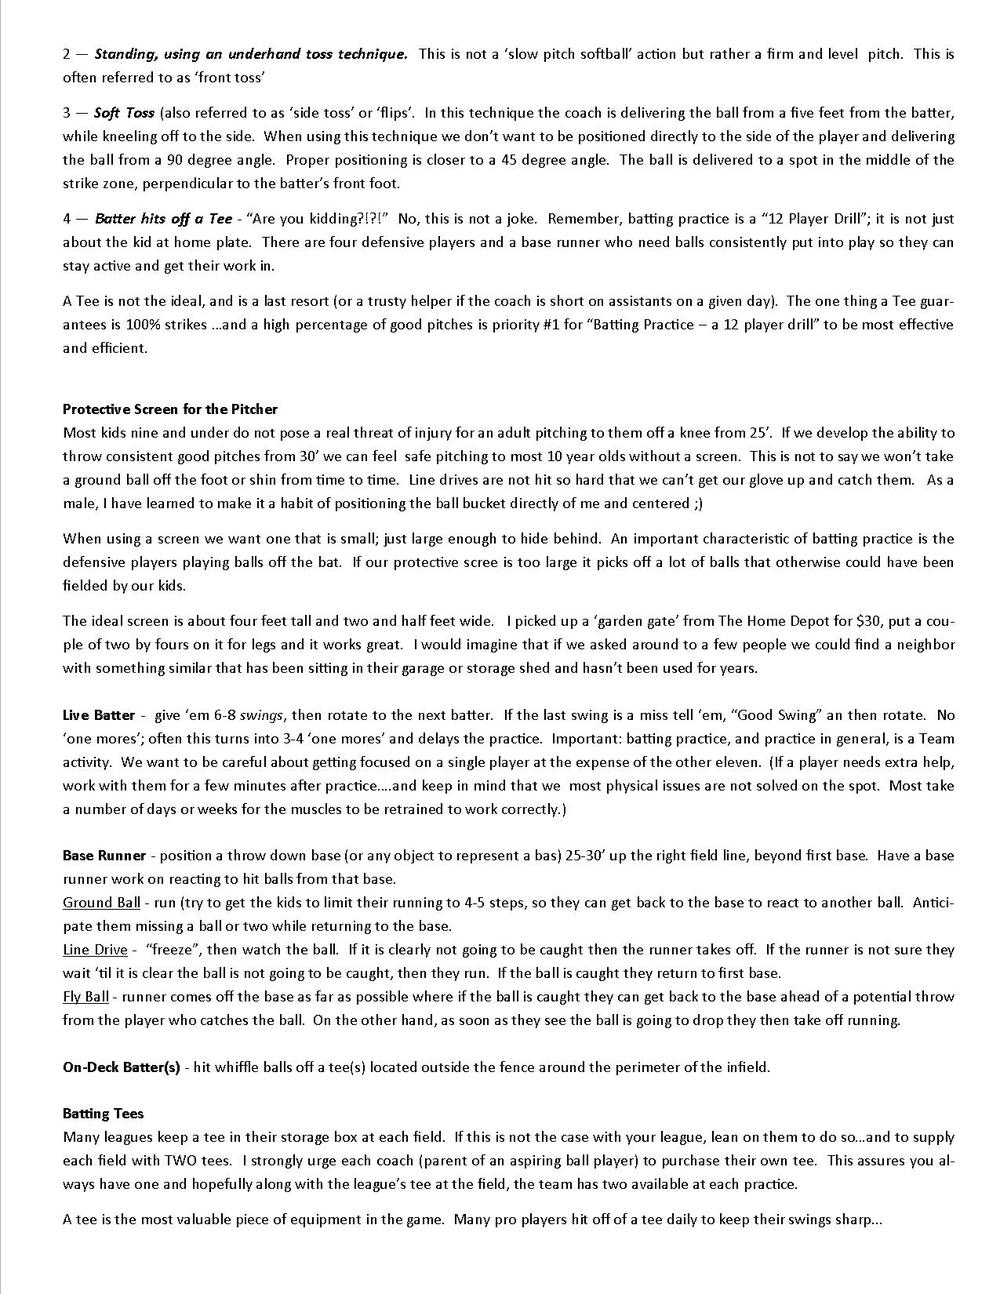 Batting Practice - Offense Group, Page 2 of 2.jpg